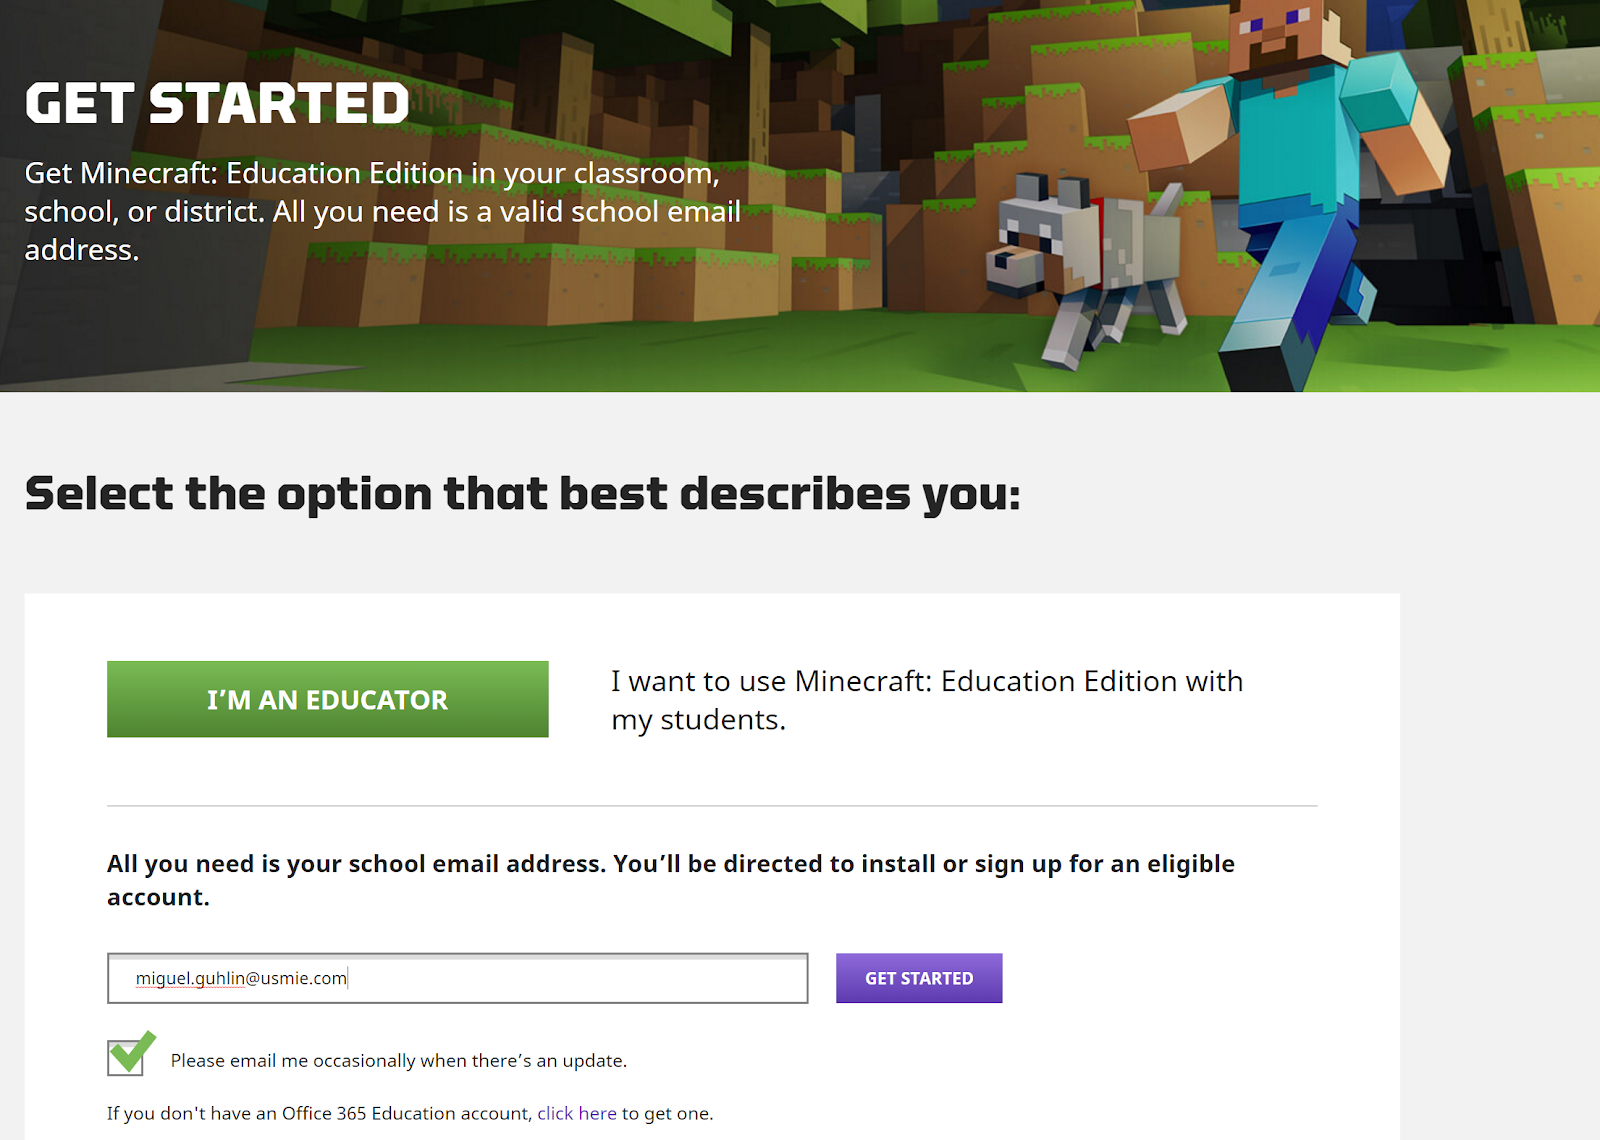 Machine generated alternative text: GET STARTED  Get Minecraft: Education Edition in your classroom,  school, or district. All you need is a valid schoo email  address.  Select the option that best describes you:  I want to use Minecraft: Education Edition with  I'M AN EDUCATOR  my students.  All you need is your school email address. You'll be directed to install or sign up for an eligible  account.  mjgugLgubJjn@usmie.com  Please email me occasionally when there's an update.  If you don 't have an Office 365 Education account, click here to get one.  GET STARTED